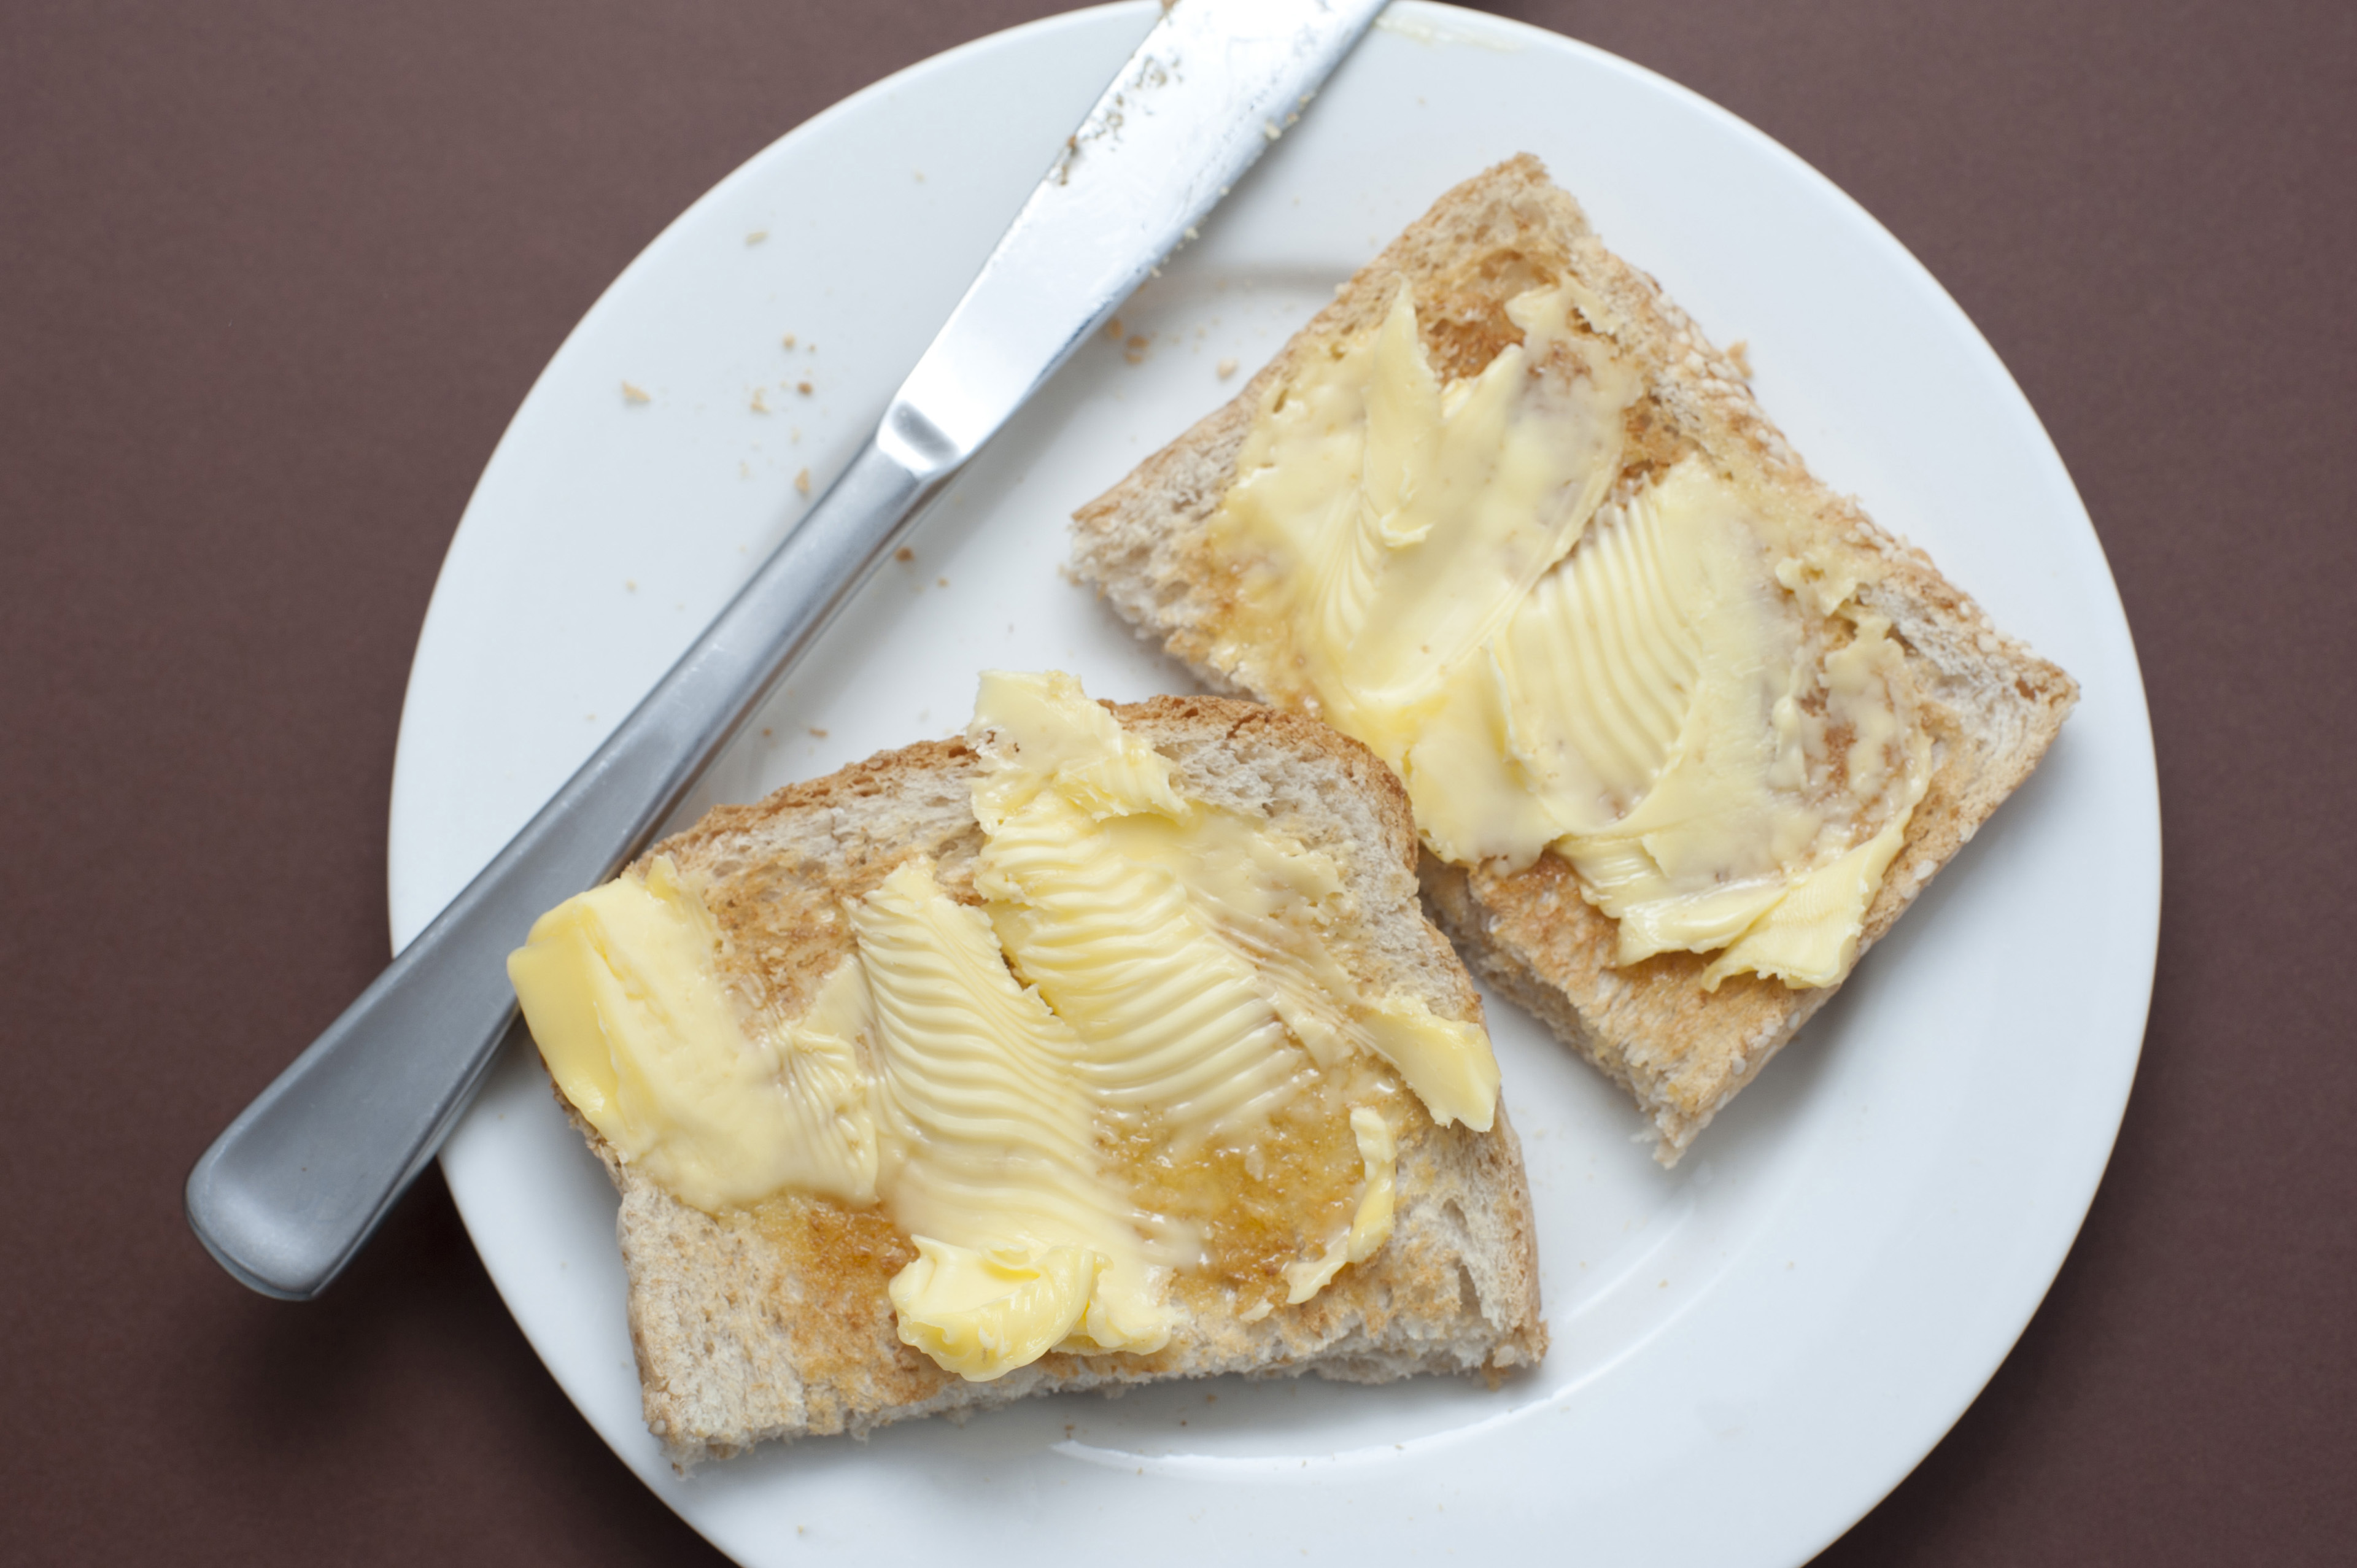 Two slices of fresh buttered white toast with a bread knife served on a plate for morning breakfast, overhead view